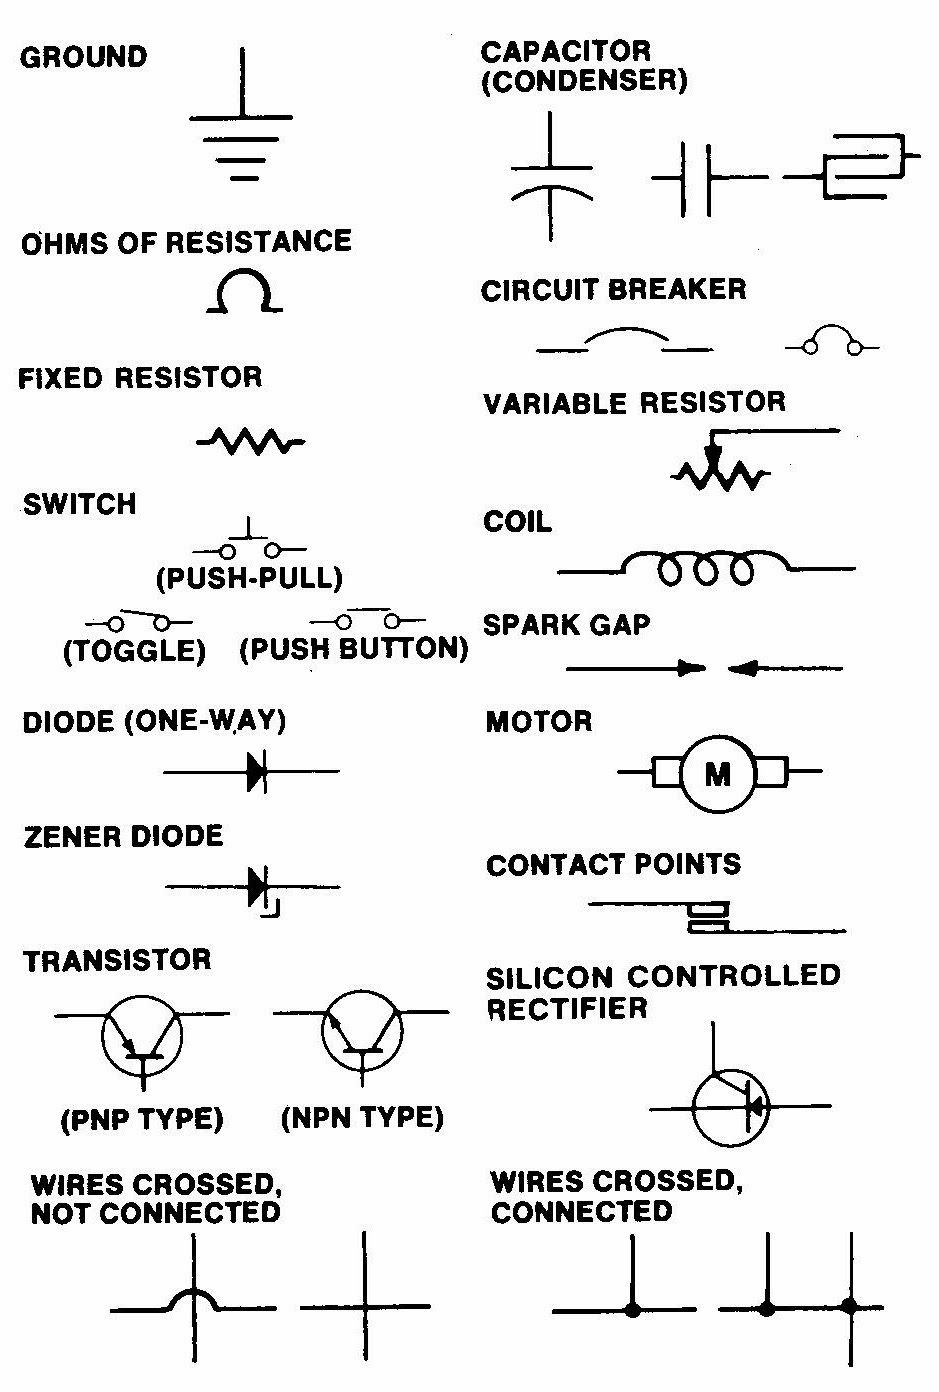 Electrical and Electronics Symbols Electrical symbols